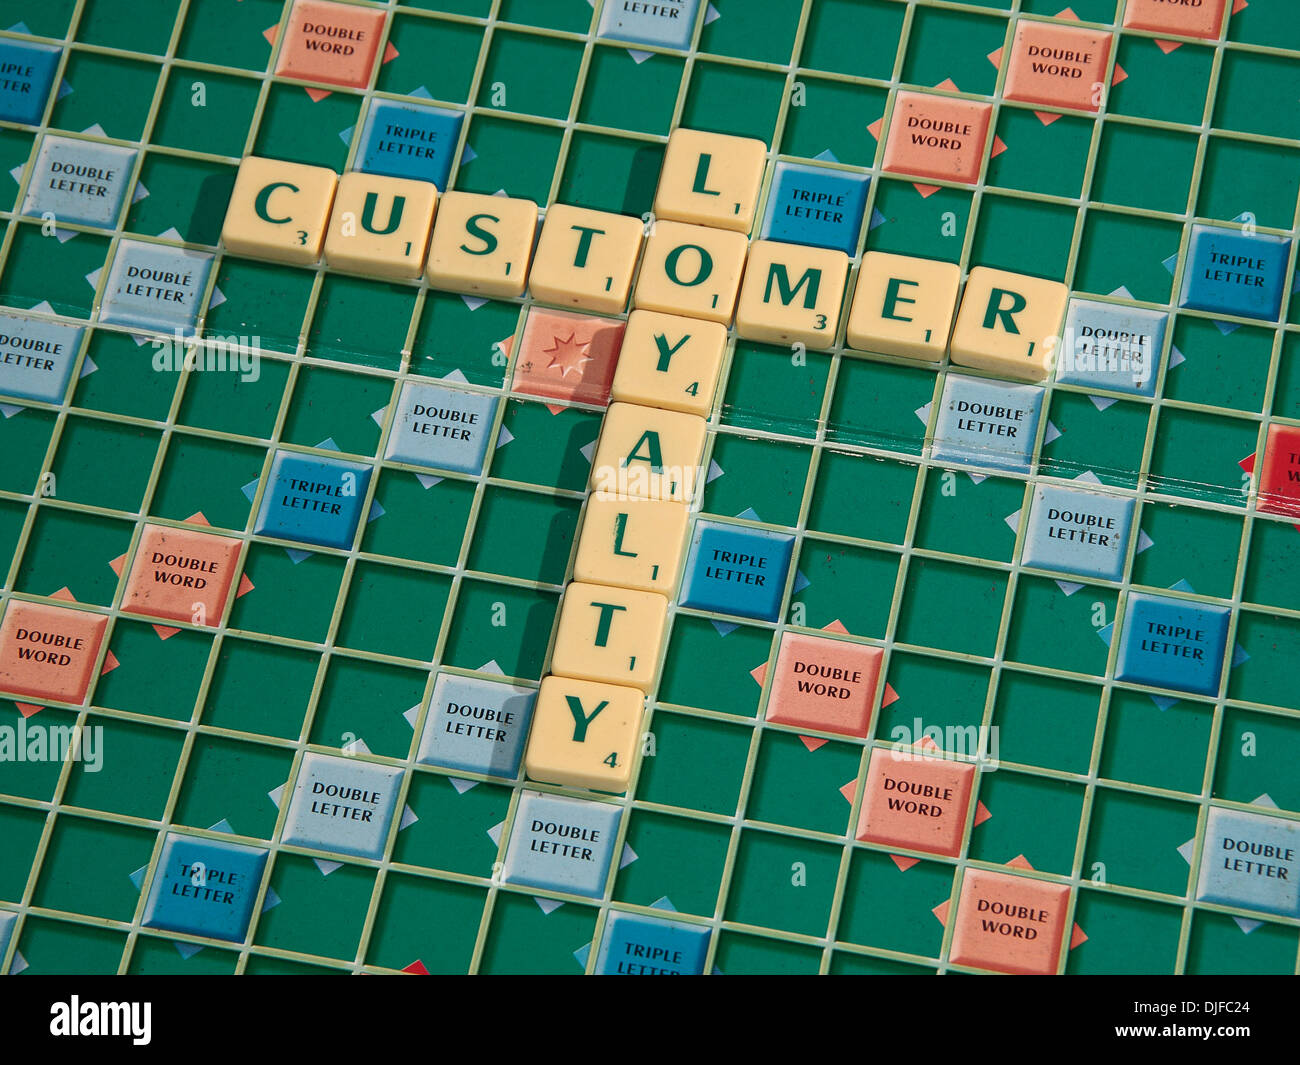 The phrase 'customer loyalty', written with scrabble tiles, on a scrabble board. - Stock Image